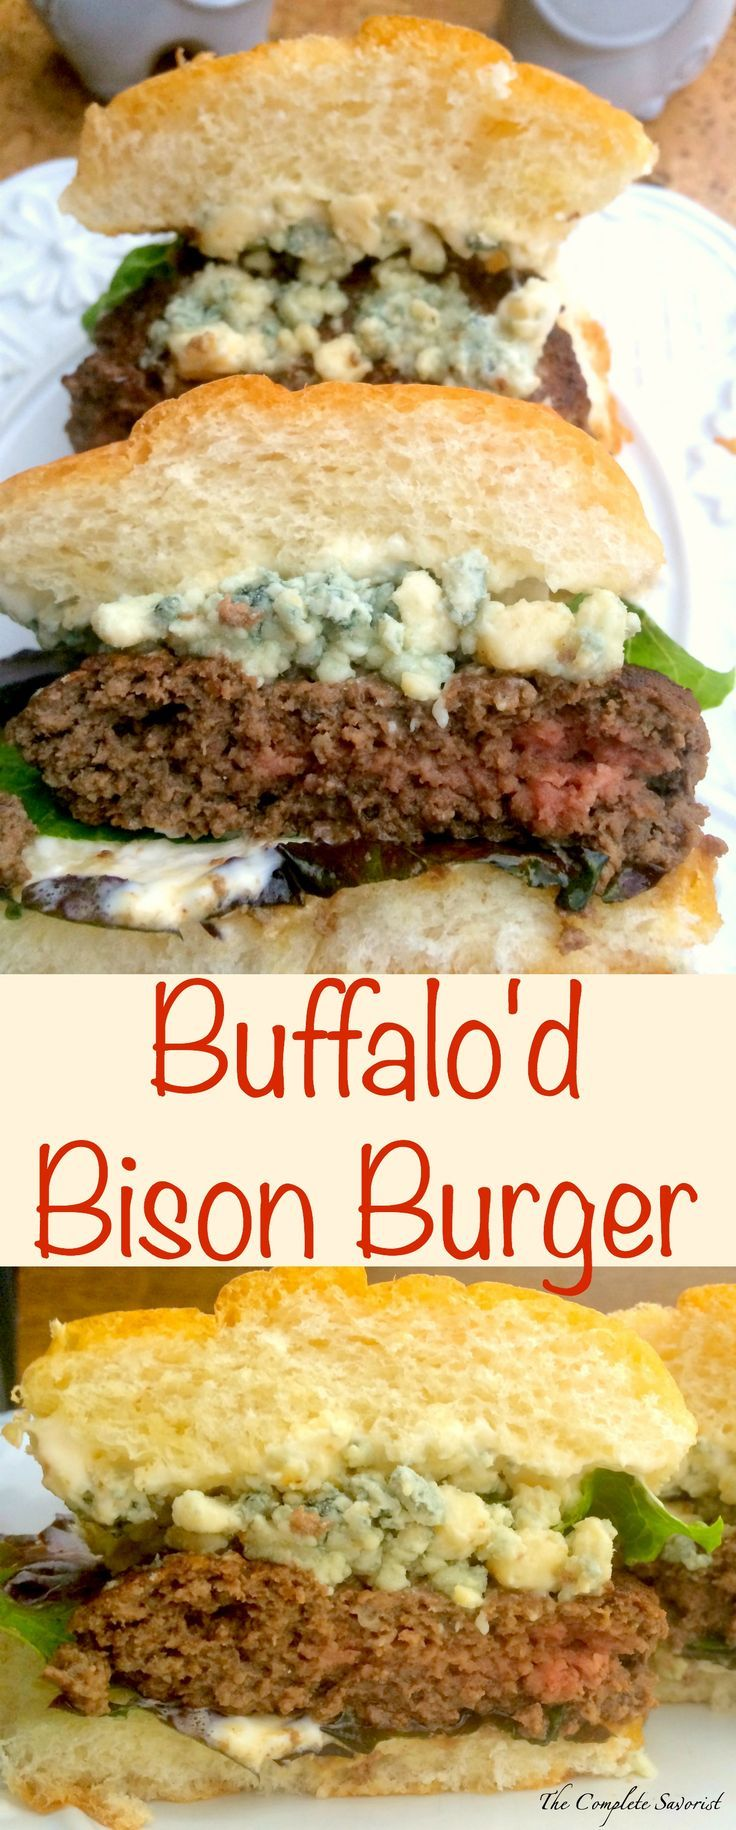 Buffalo'd Bison Burgers ~ Bison meat seasoned buffalo style, topped with blue cheese ~ The Complete Savorist